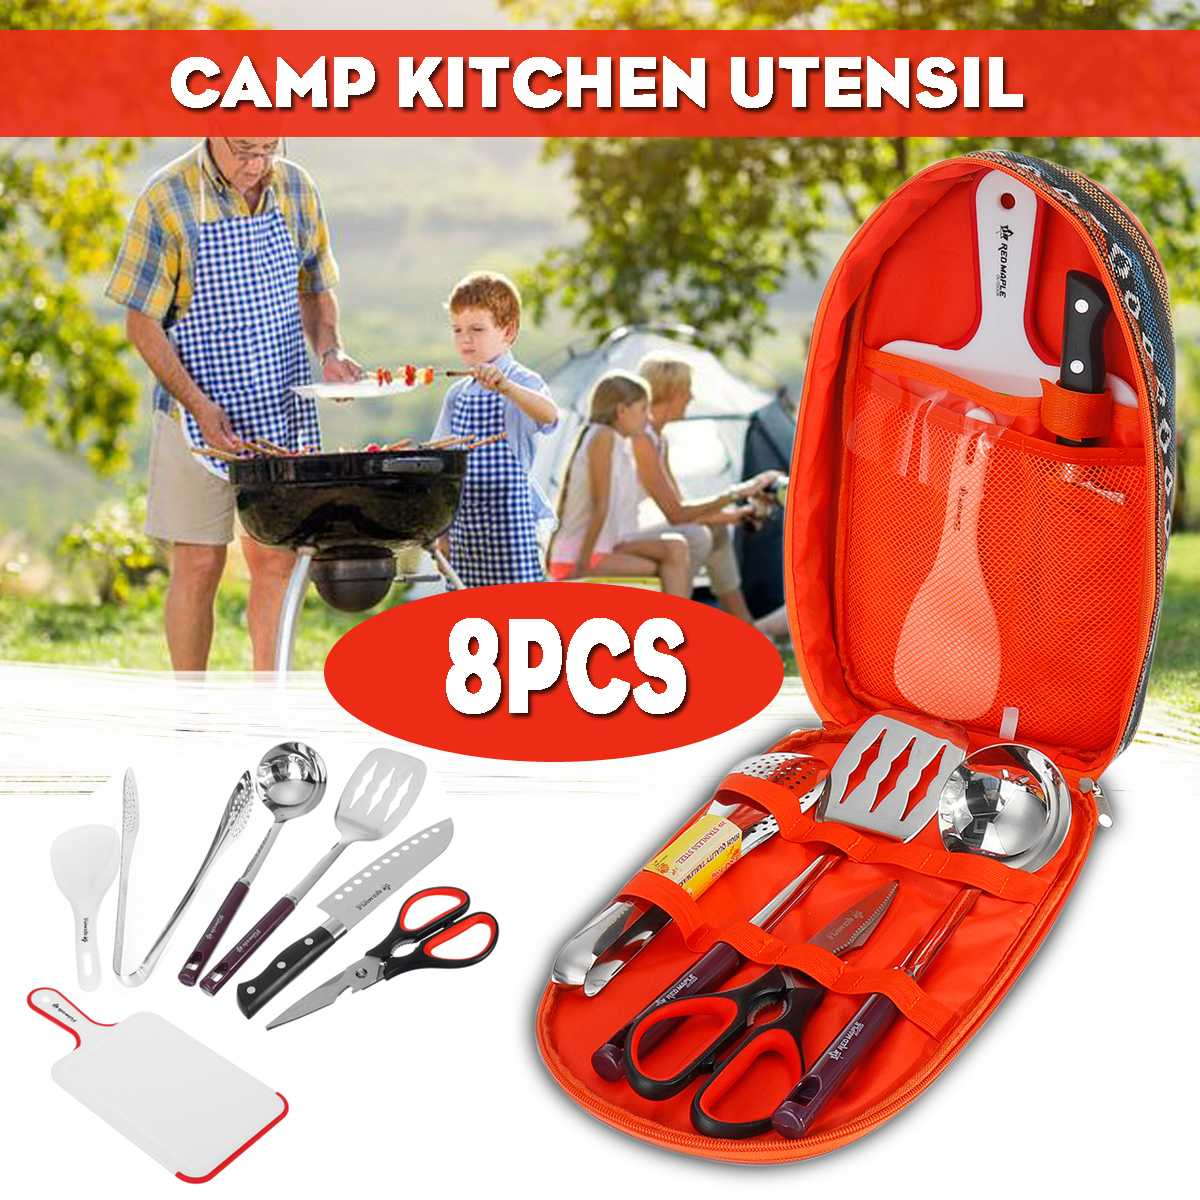 Details about  /Camping 8 in 1 Utensil--2 for $8.00